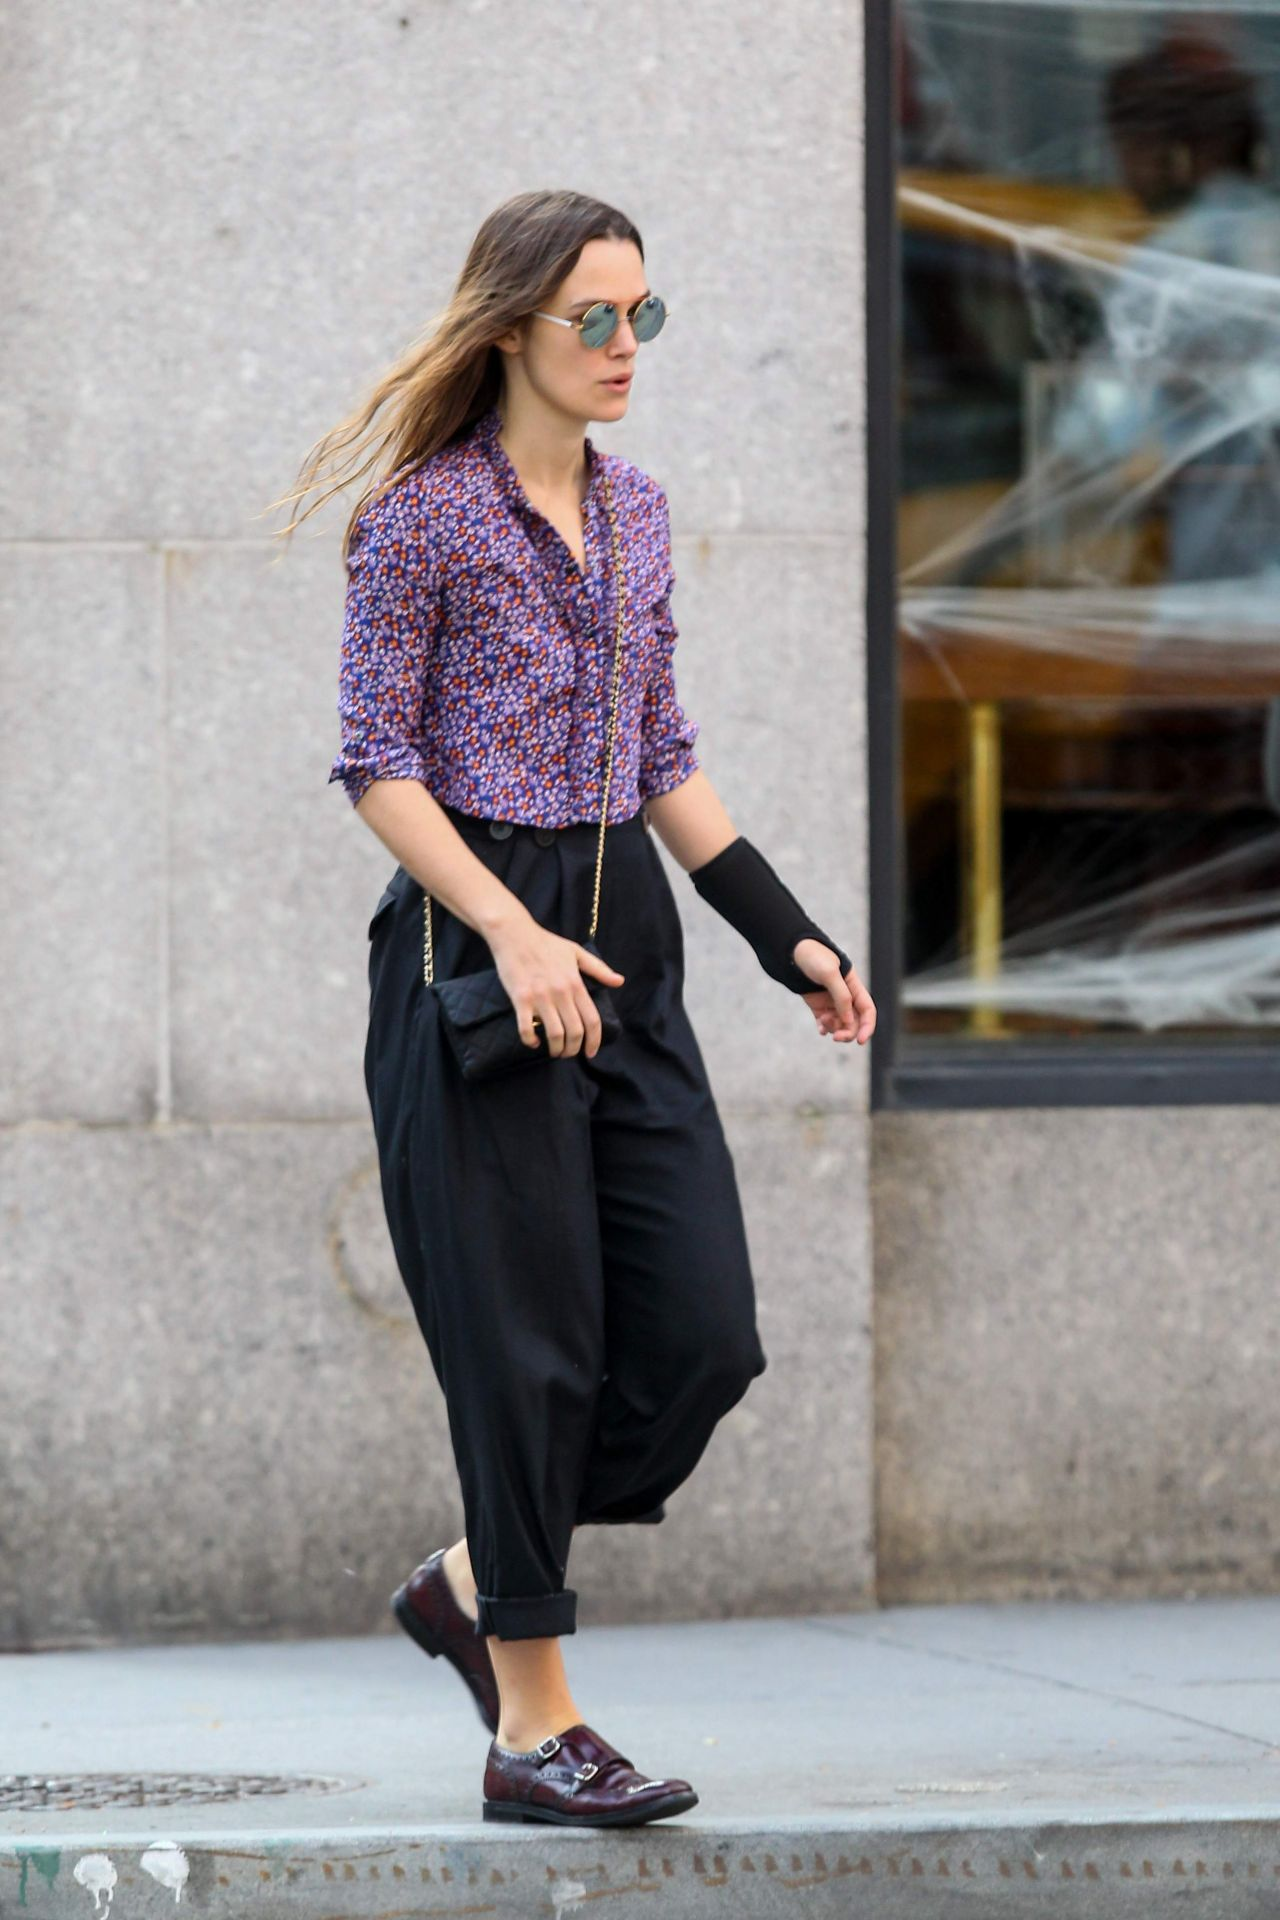 Keira Knightley Street Style Out In New York City